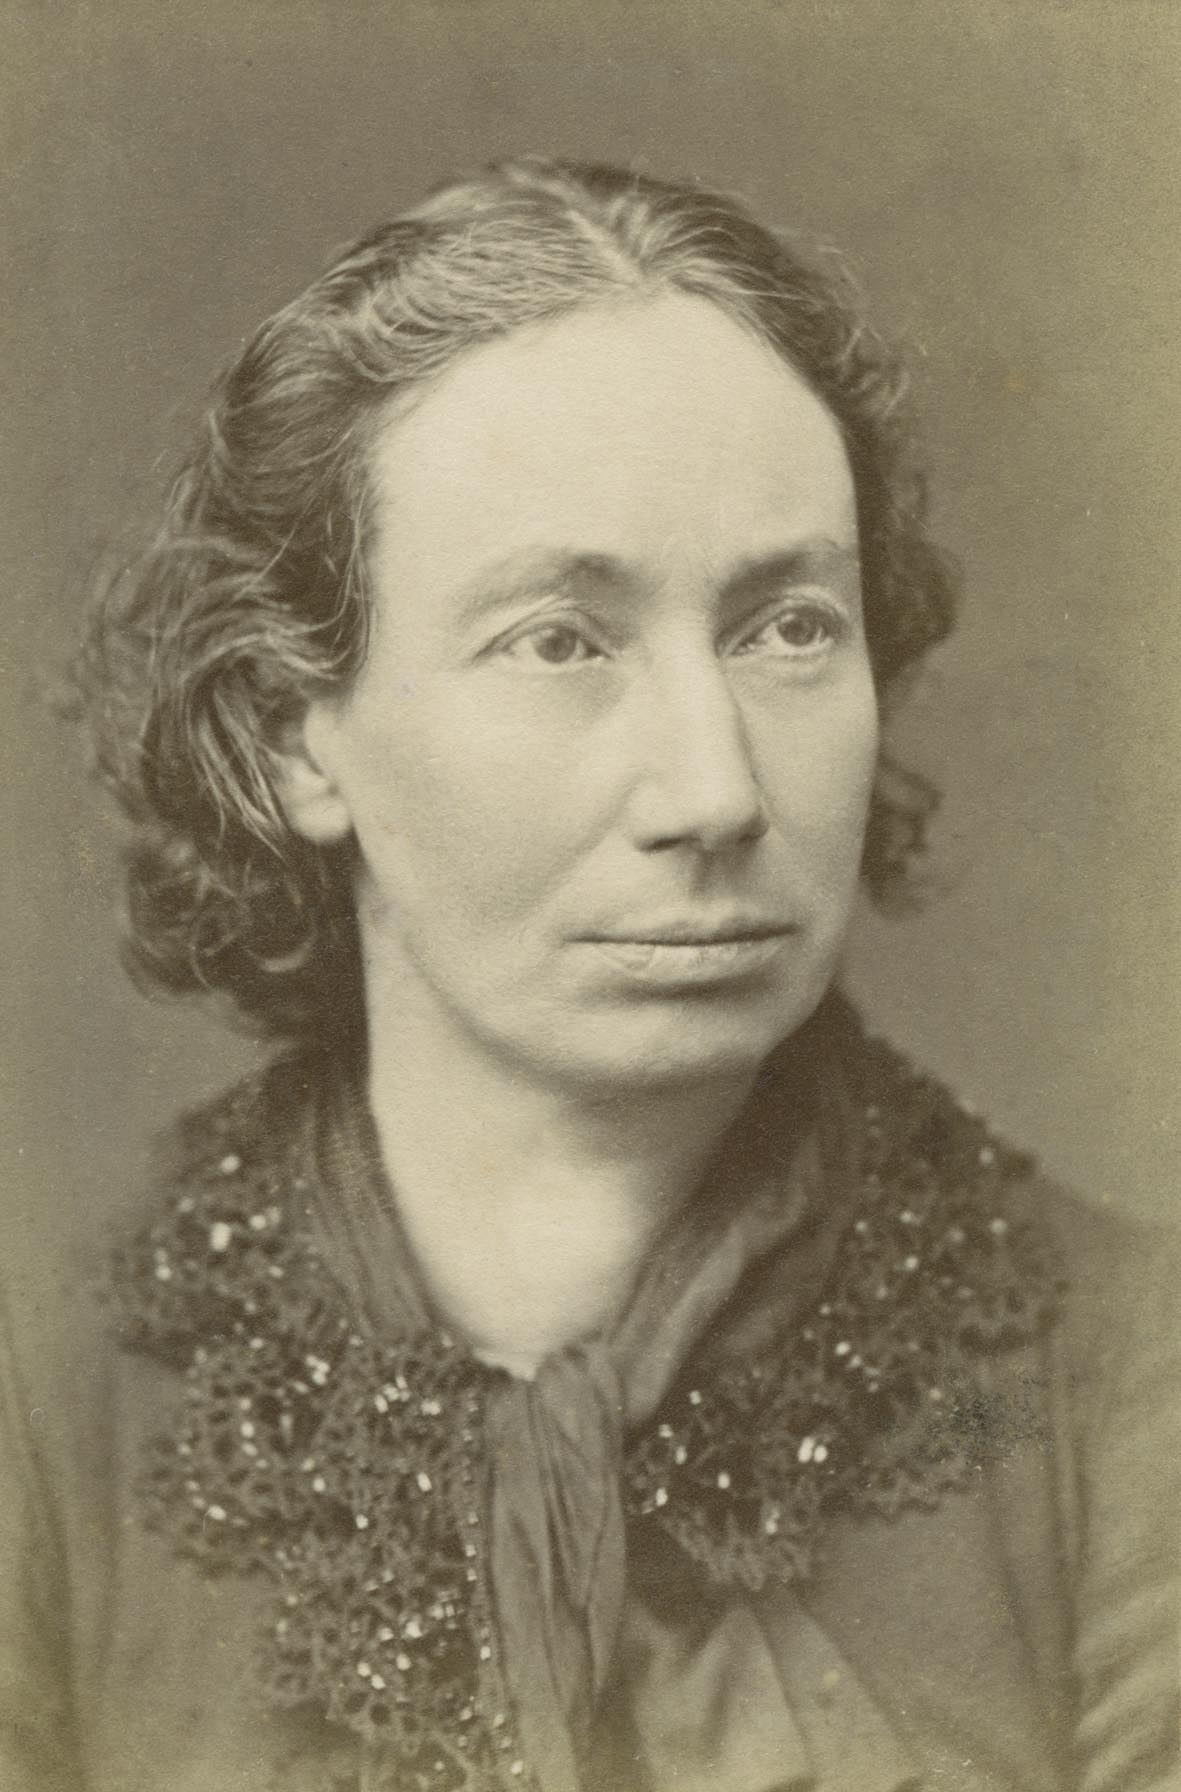 Louise Michel Wikipedia La Enciclopedia Libre